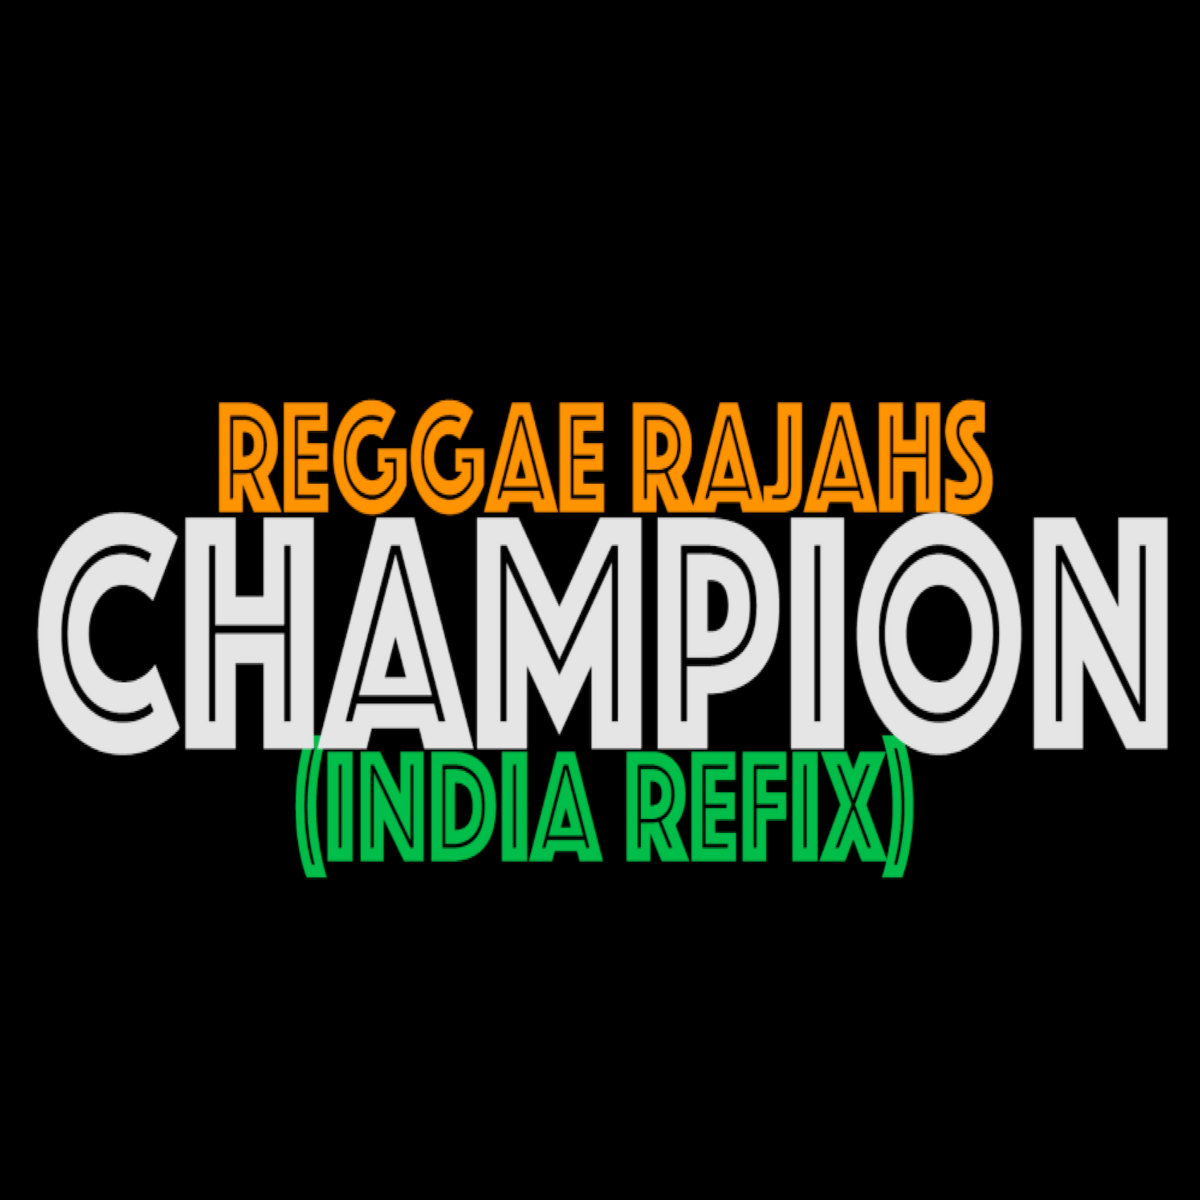 save off lace up in entire collection Champion (India Refix) | Reggae Rajahs